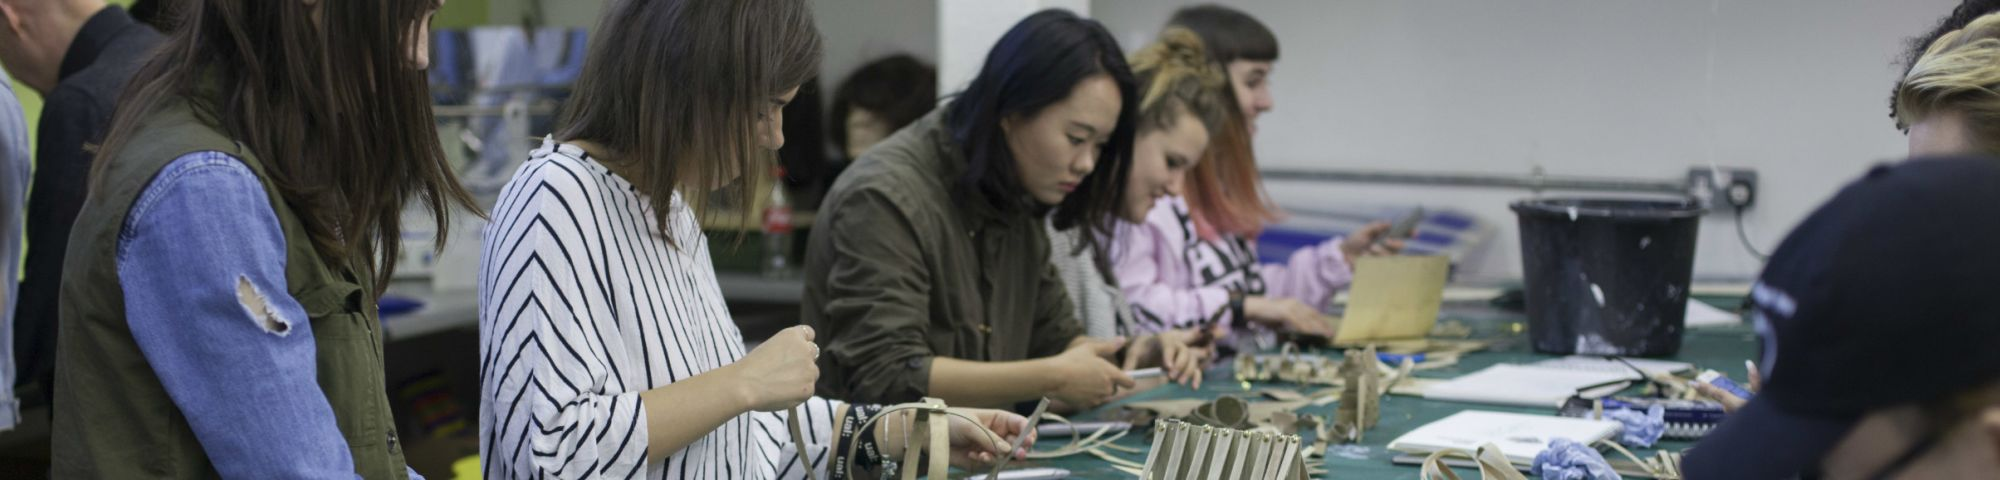 Students at a workbench using materials to create models